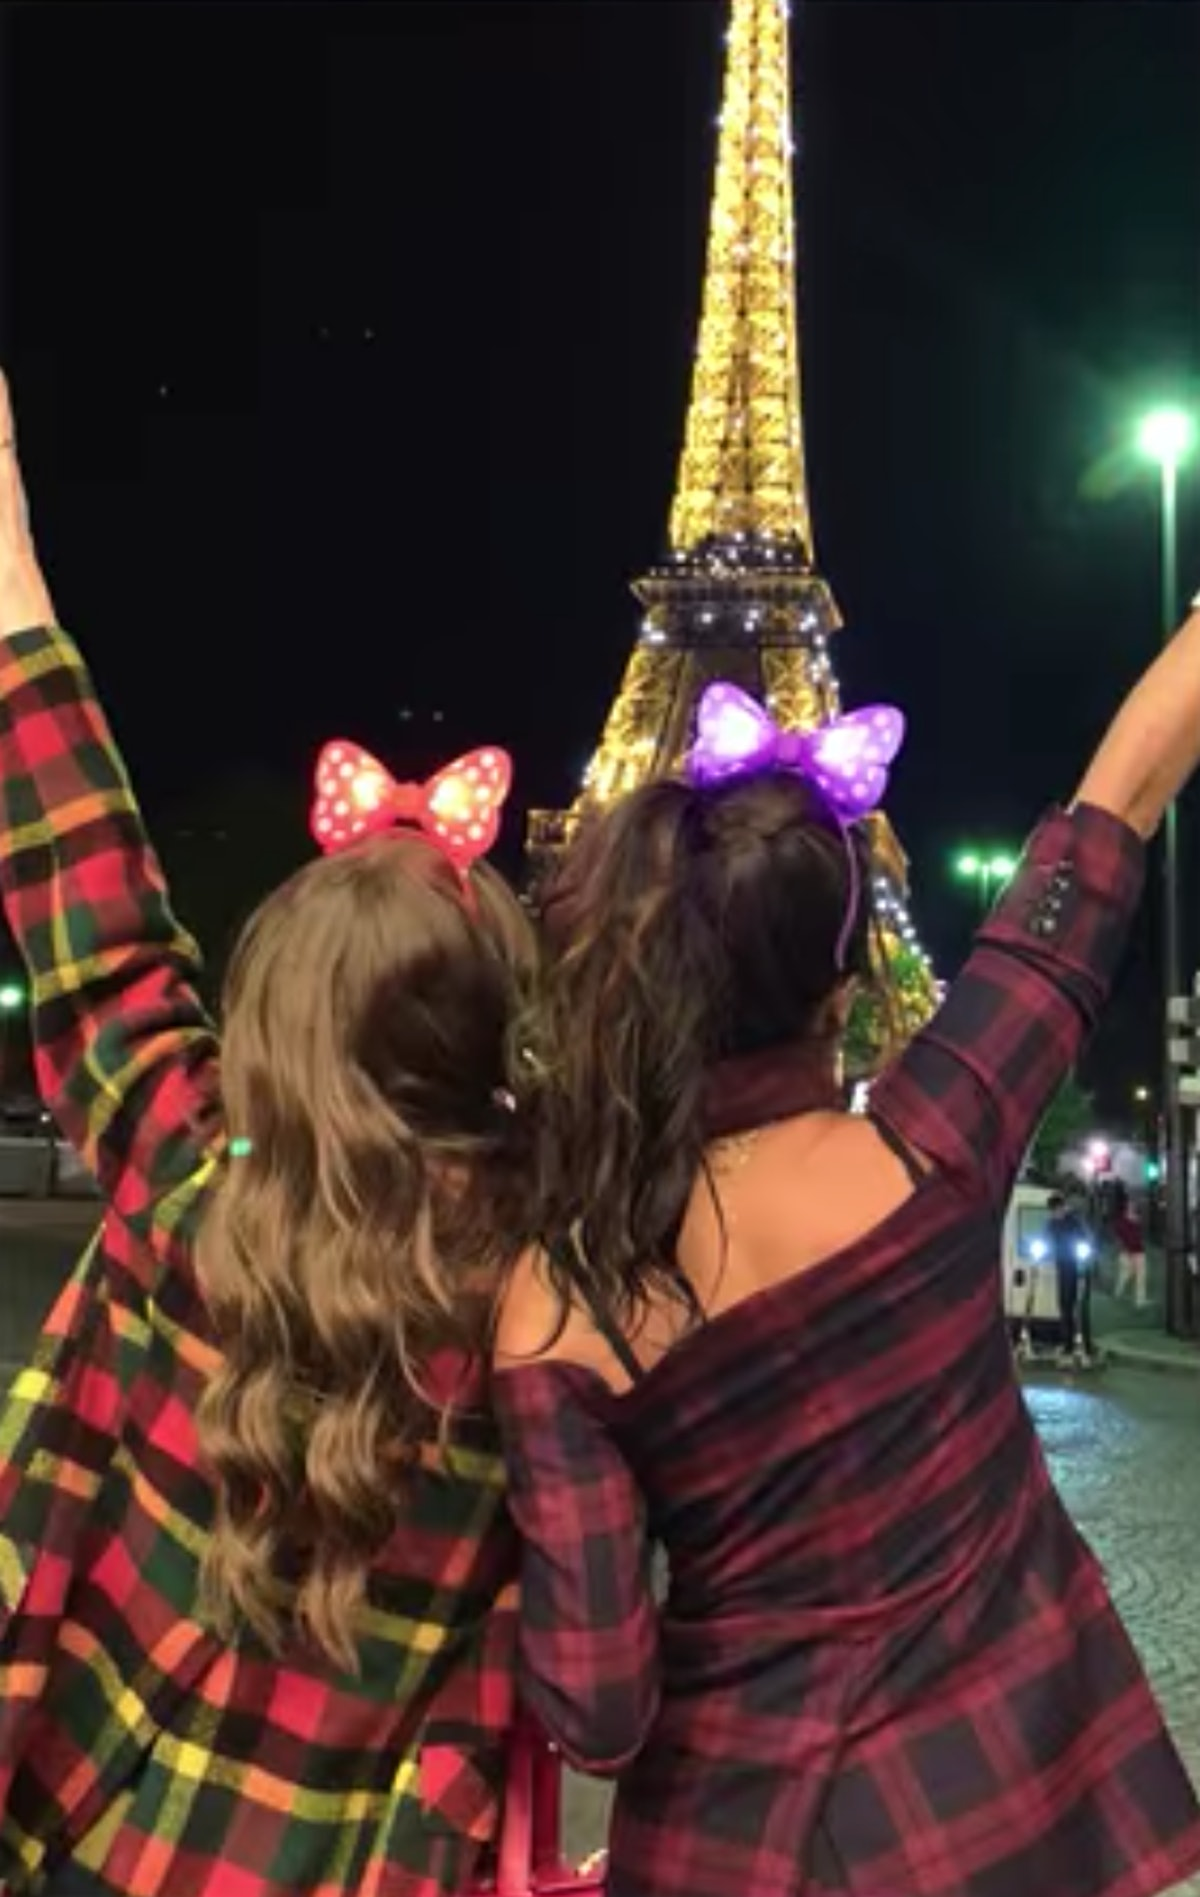 Emily (Lily Collins) and Mindy (Ashley Park) look out at the Eiffel Tower in Paris.